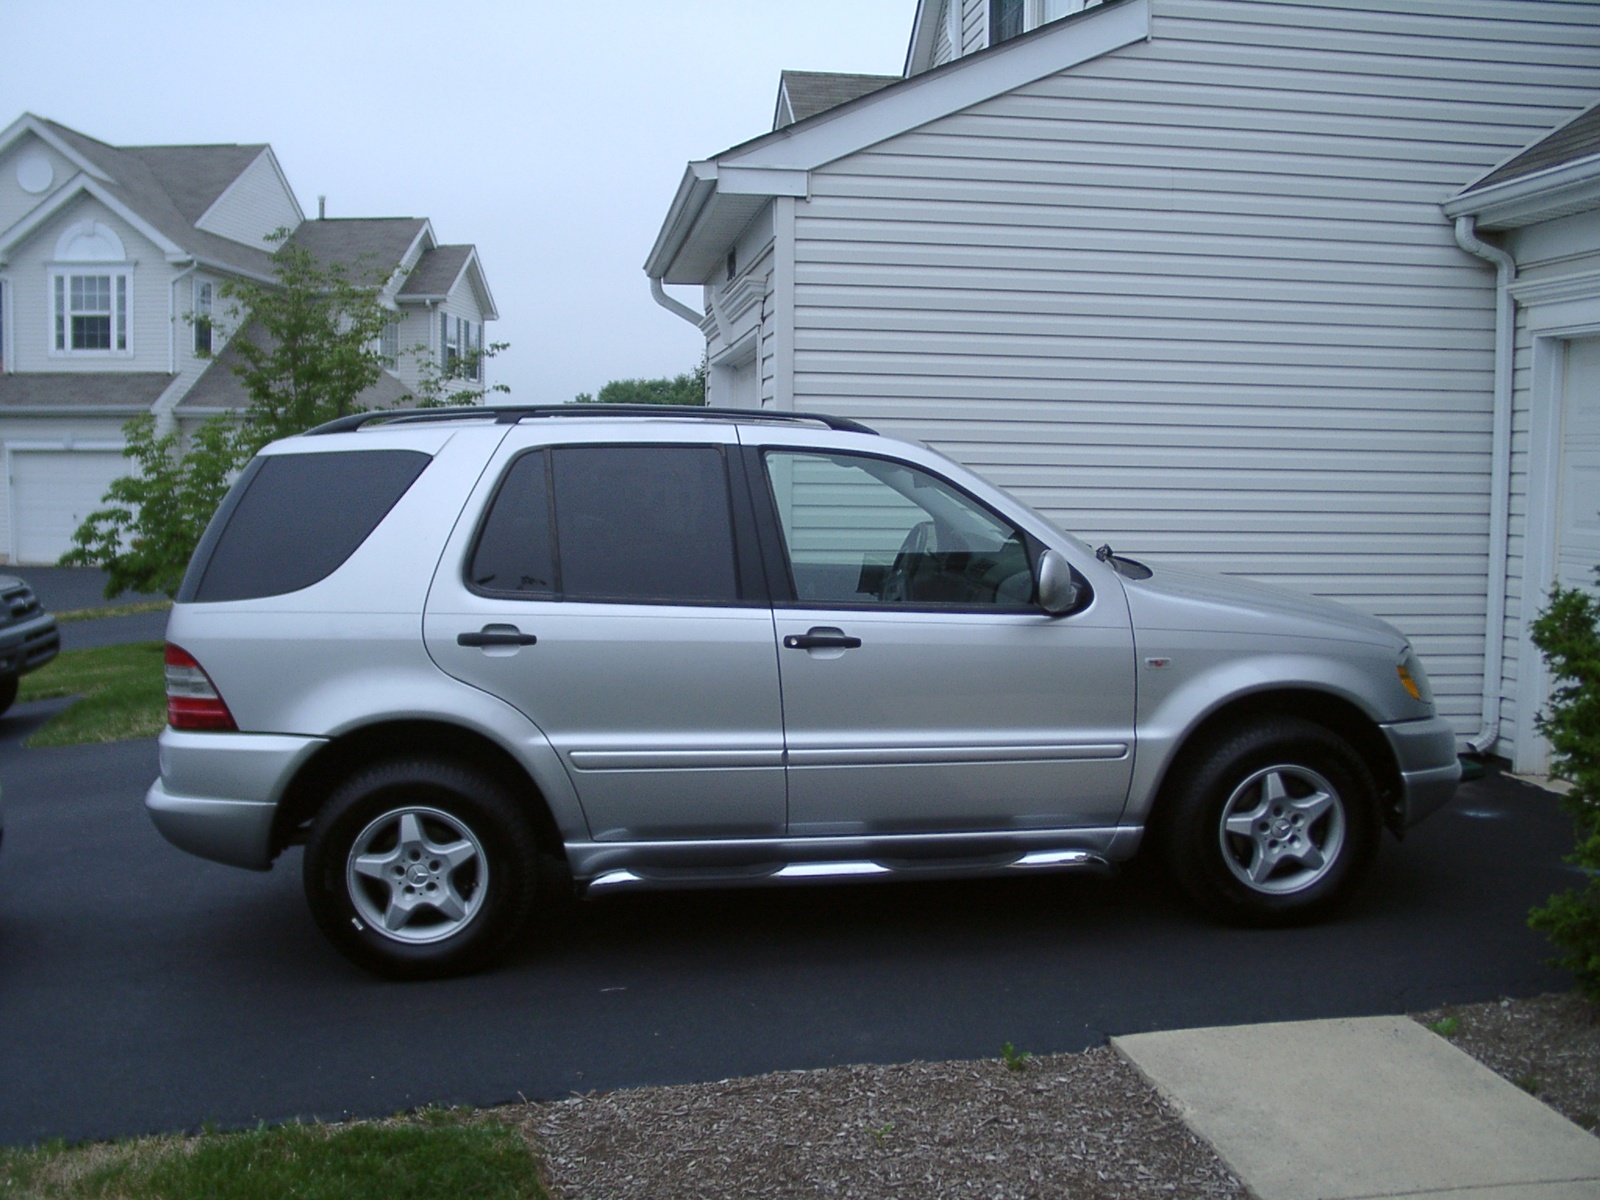 Picture of 2001 mercedes benz m class ml320 exterior for Mercedes benz suv 2001